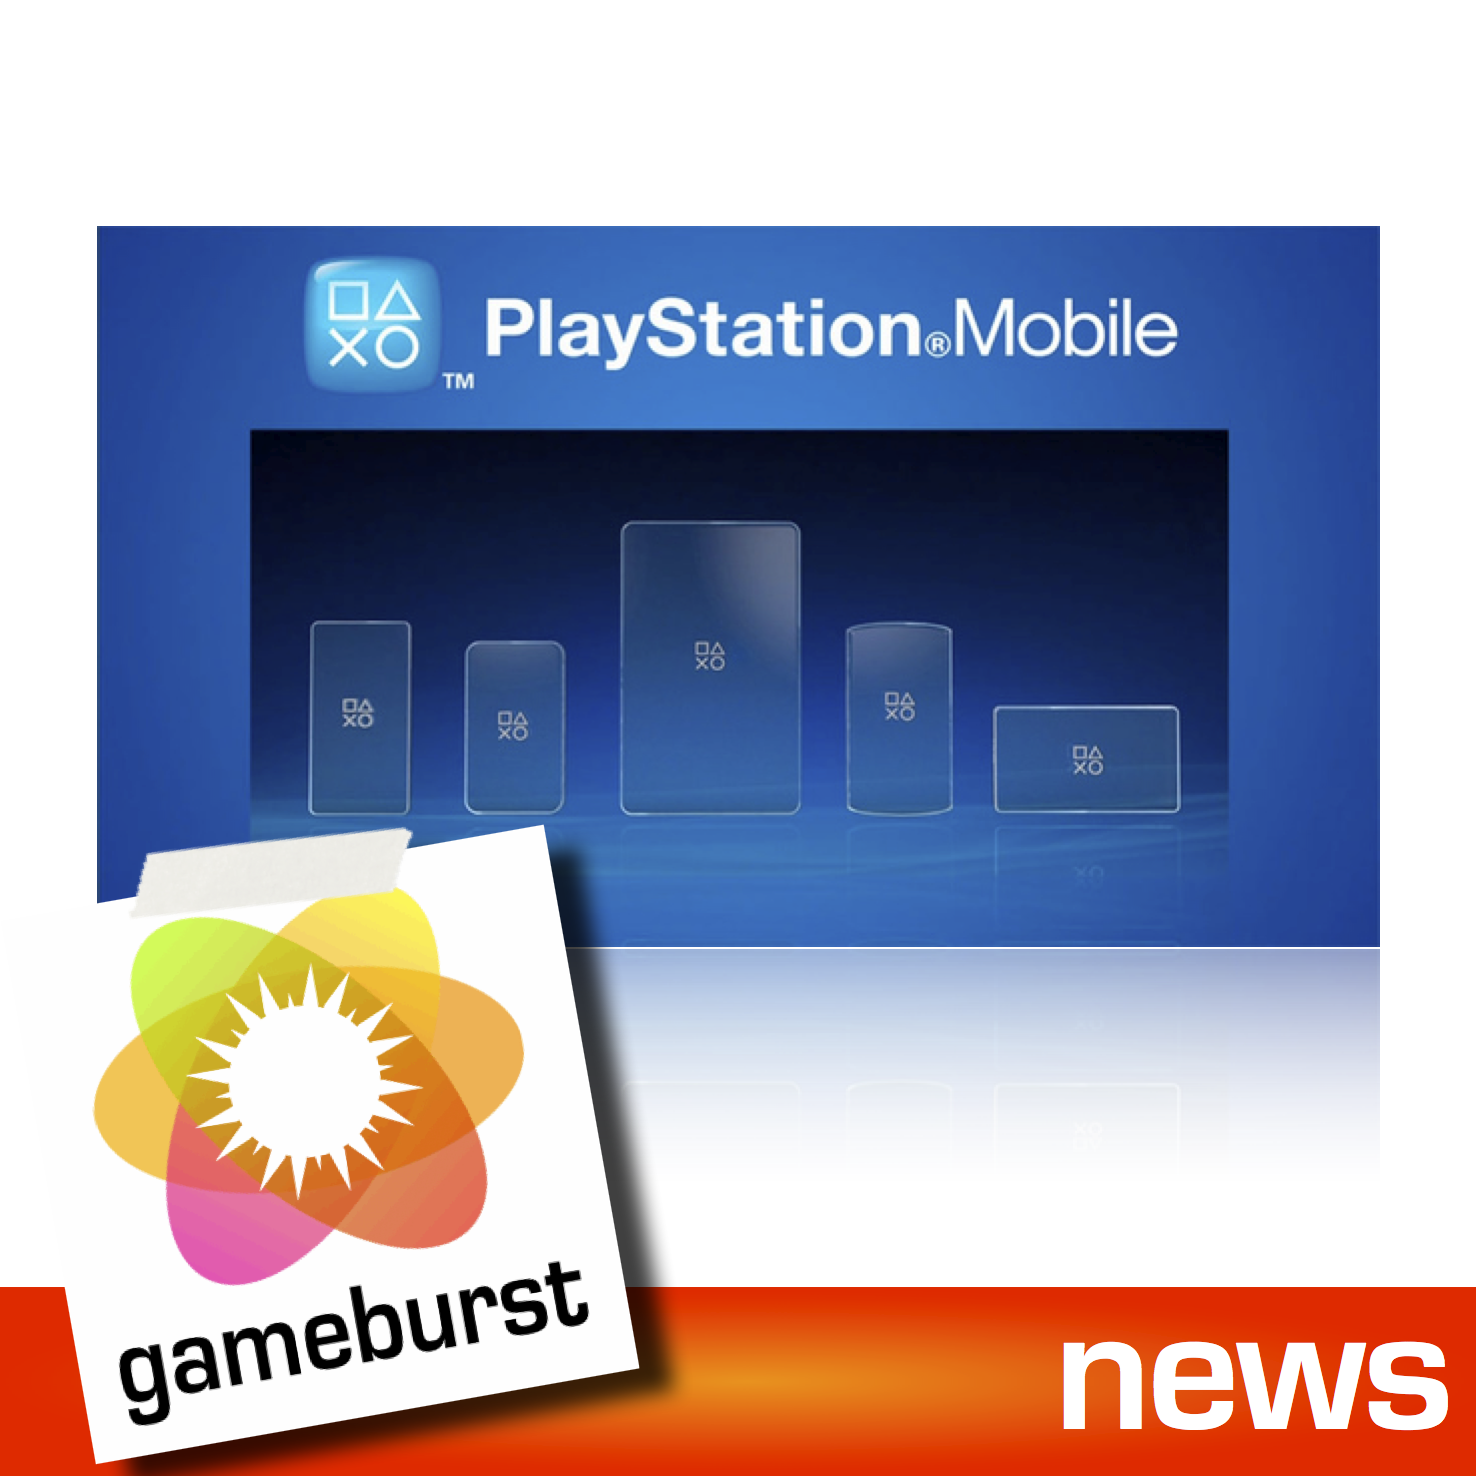 GameBurst News - October 7th 2012